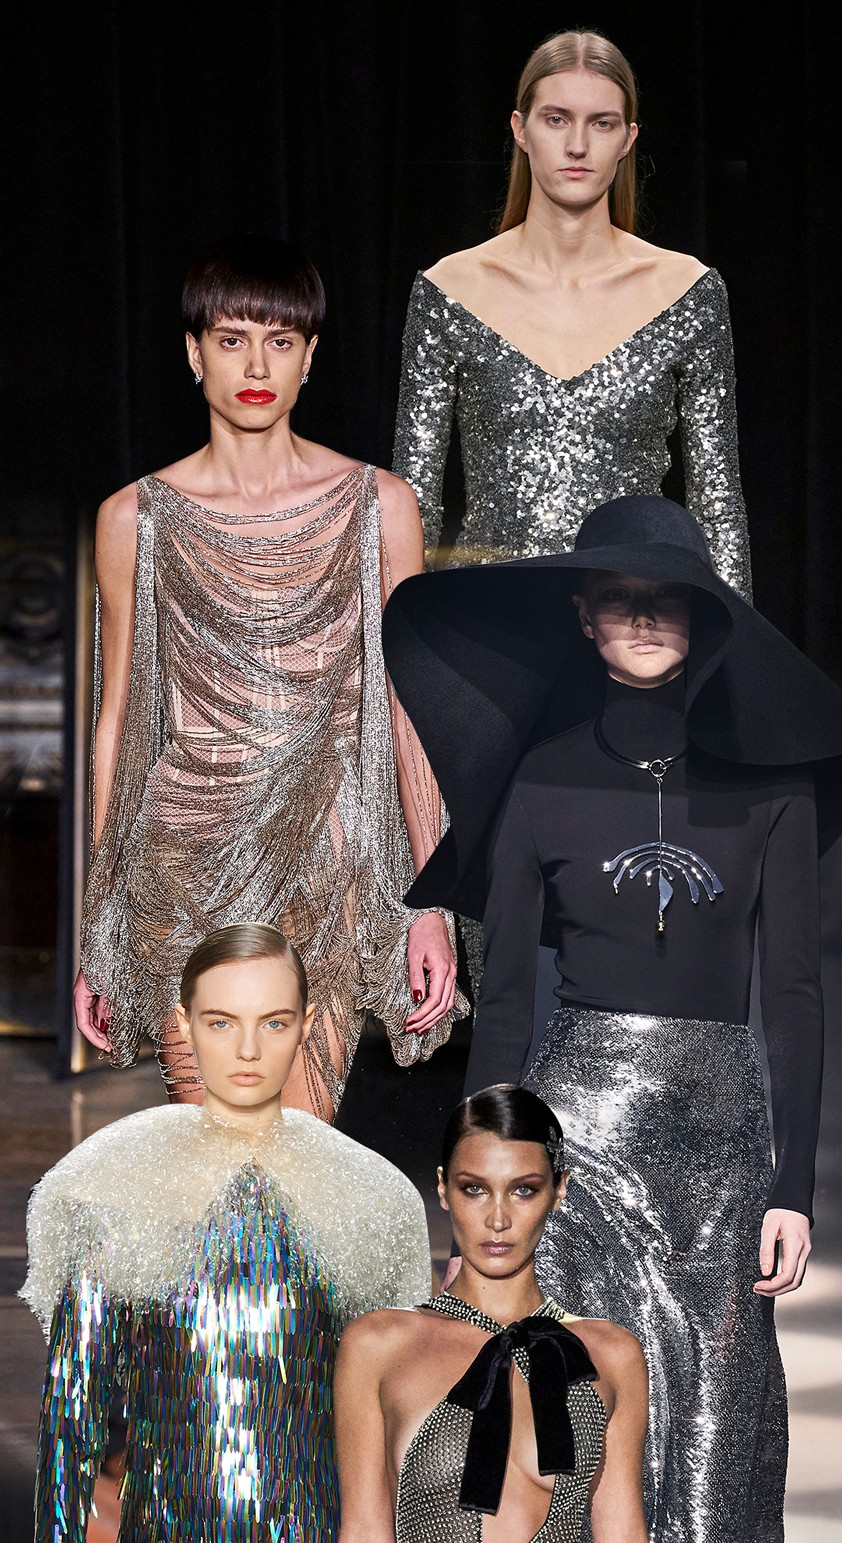 The Hottest And Most Coveted Fashion Trends From The Fall 2020 Runways (2) fashion trend The Hottest And Most Coveted Fashion Trends From The Fall 2020 Runways The Hottest And Most Coveted Fashion Trends From The Fall 2020 Runways 2